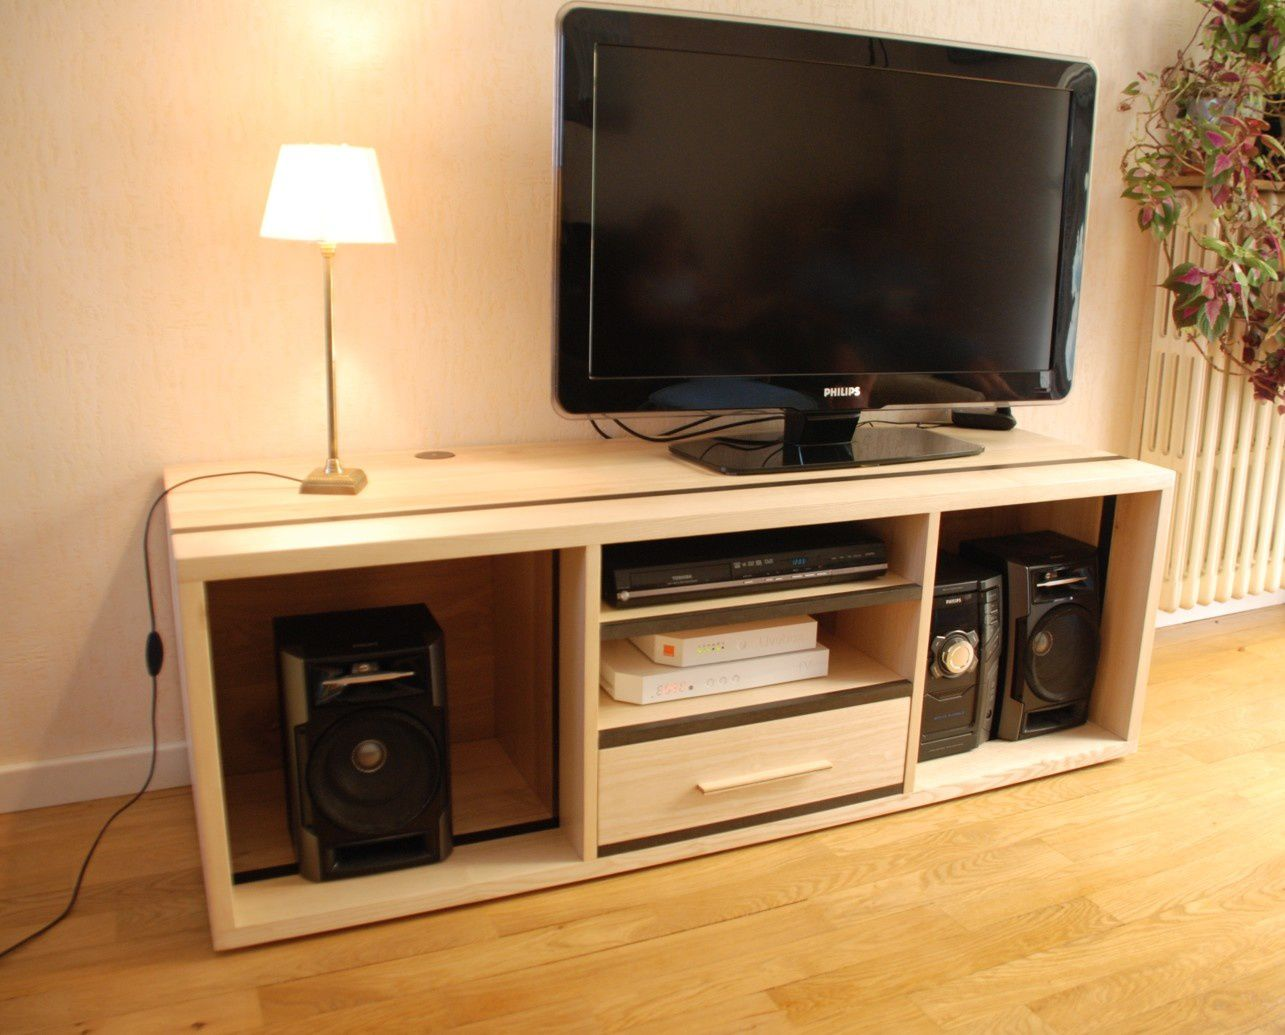 Album meuble tv hifi contemporain atelier pourquoi pas mobilier design - Meuble tv hifi design ...